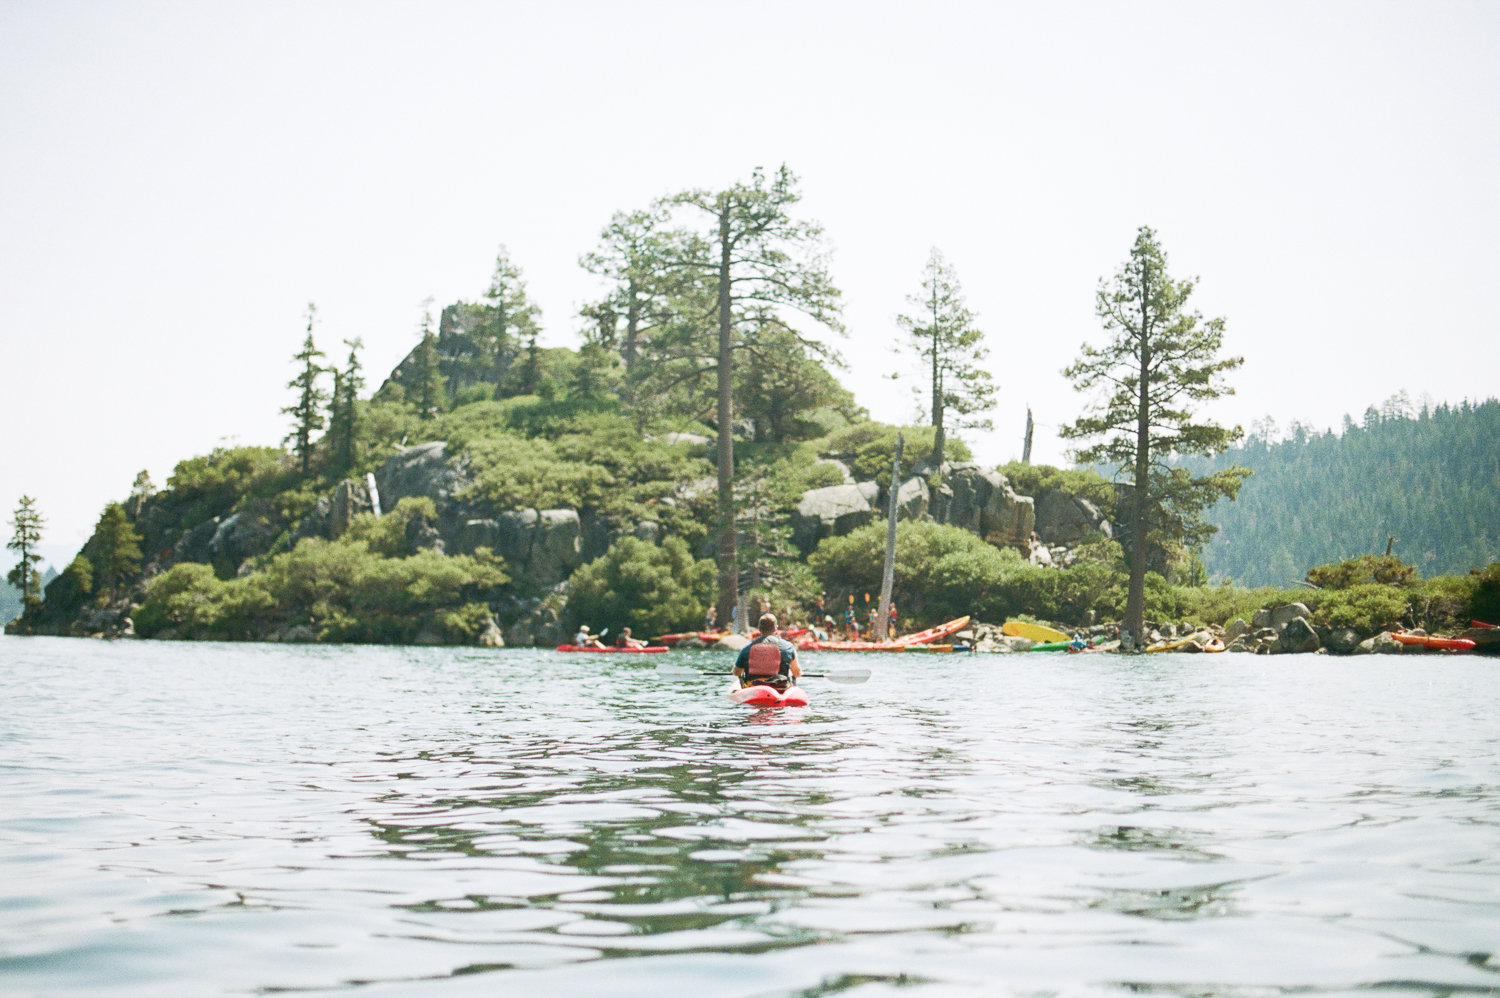 Kayaking towards Fennet Island in Emerald Bay